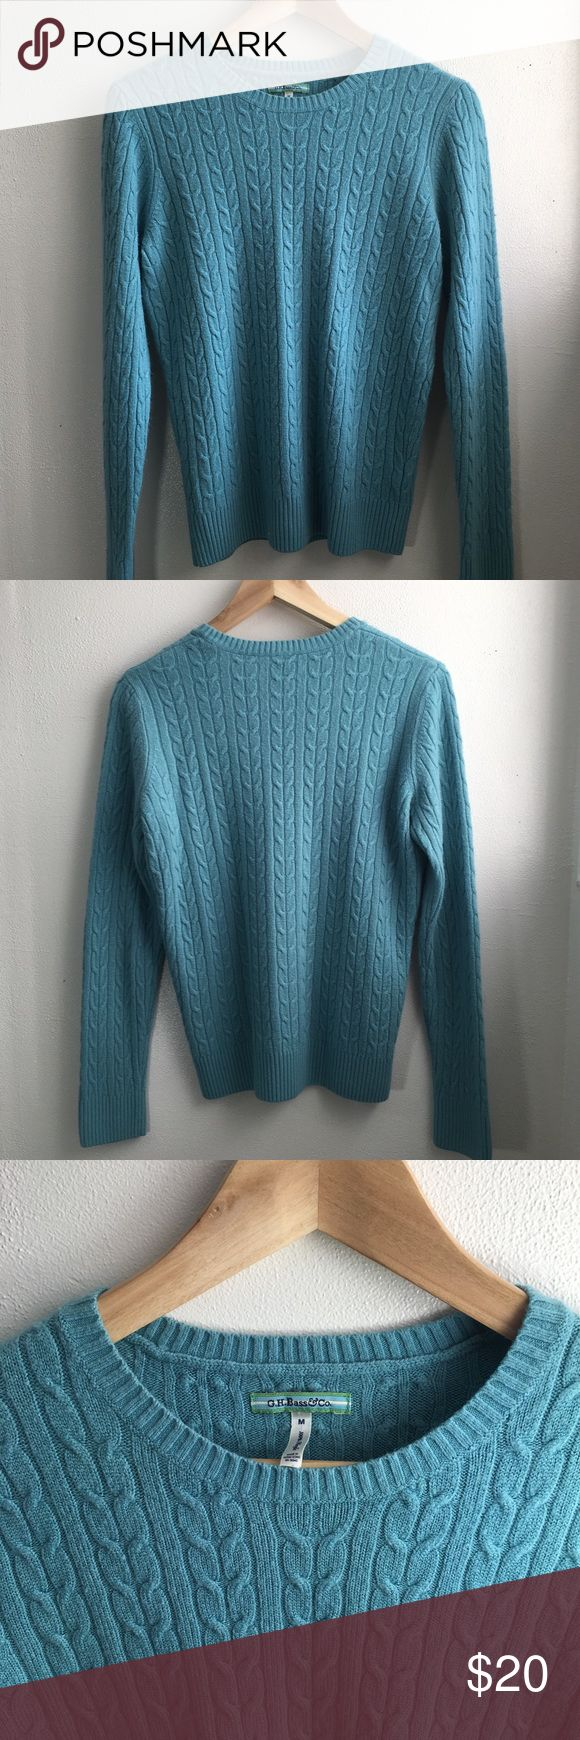 🆕 Listing!  G.H. Bass & Co Cableknit Sweater Lightweight cableknit sweater with ribbed sleeve cuffs and hem in turquoise/aqua.  Crew neck.  100% acrylic.  EUC.  Fitted M. Bass Sweaters Crew & Scoop Necks